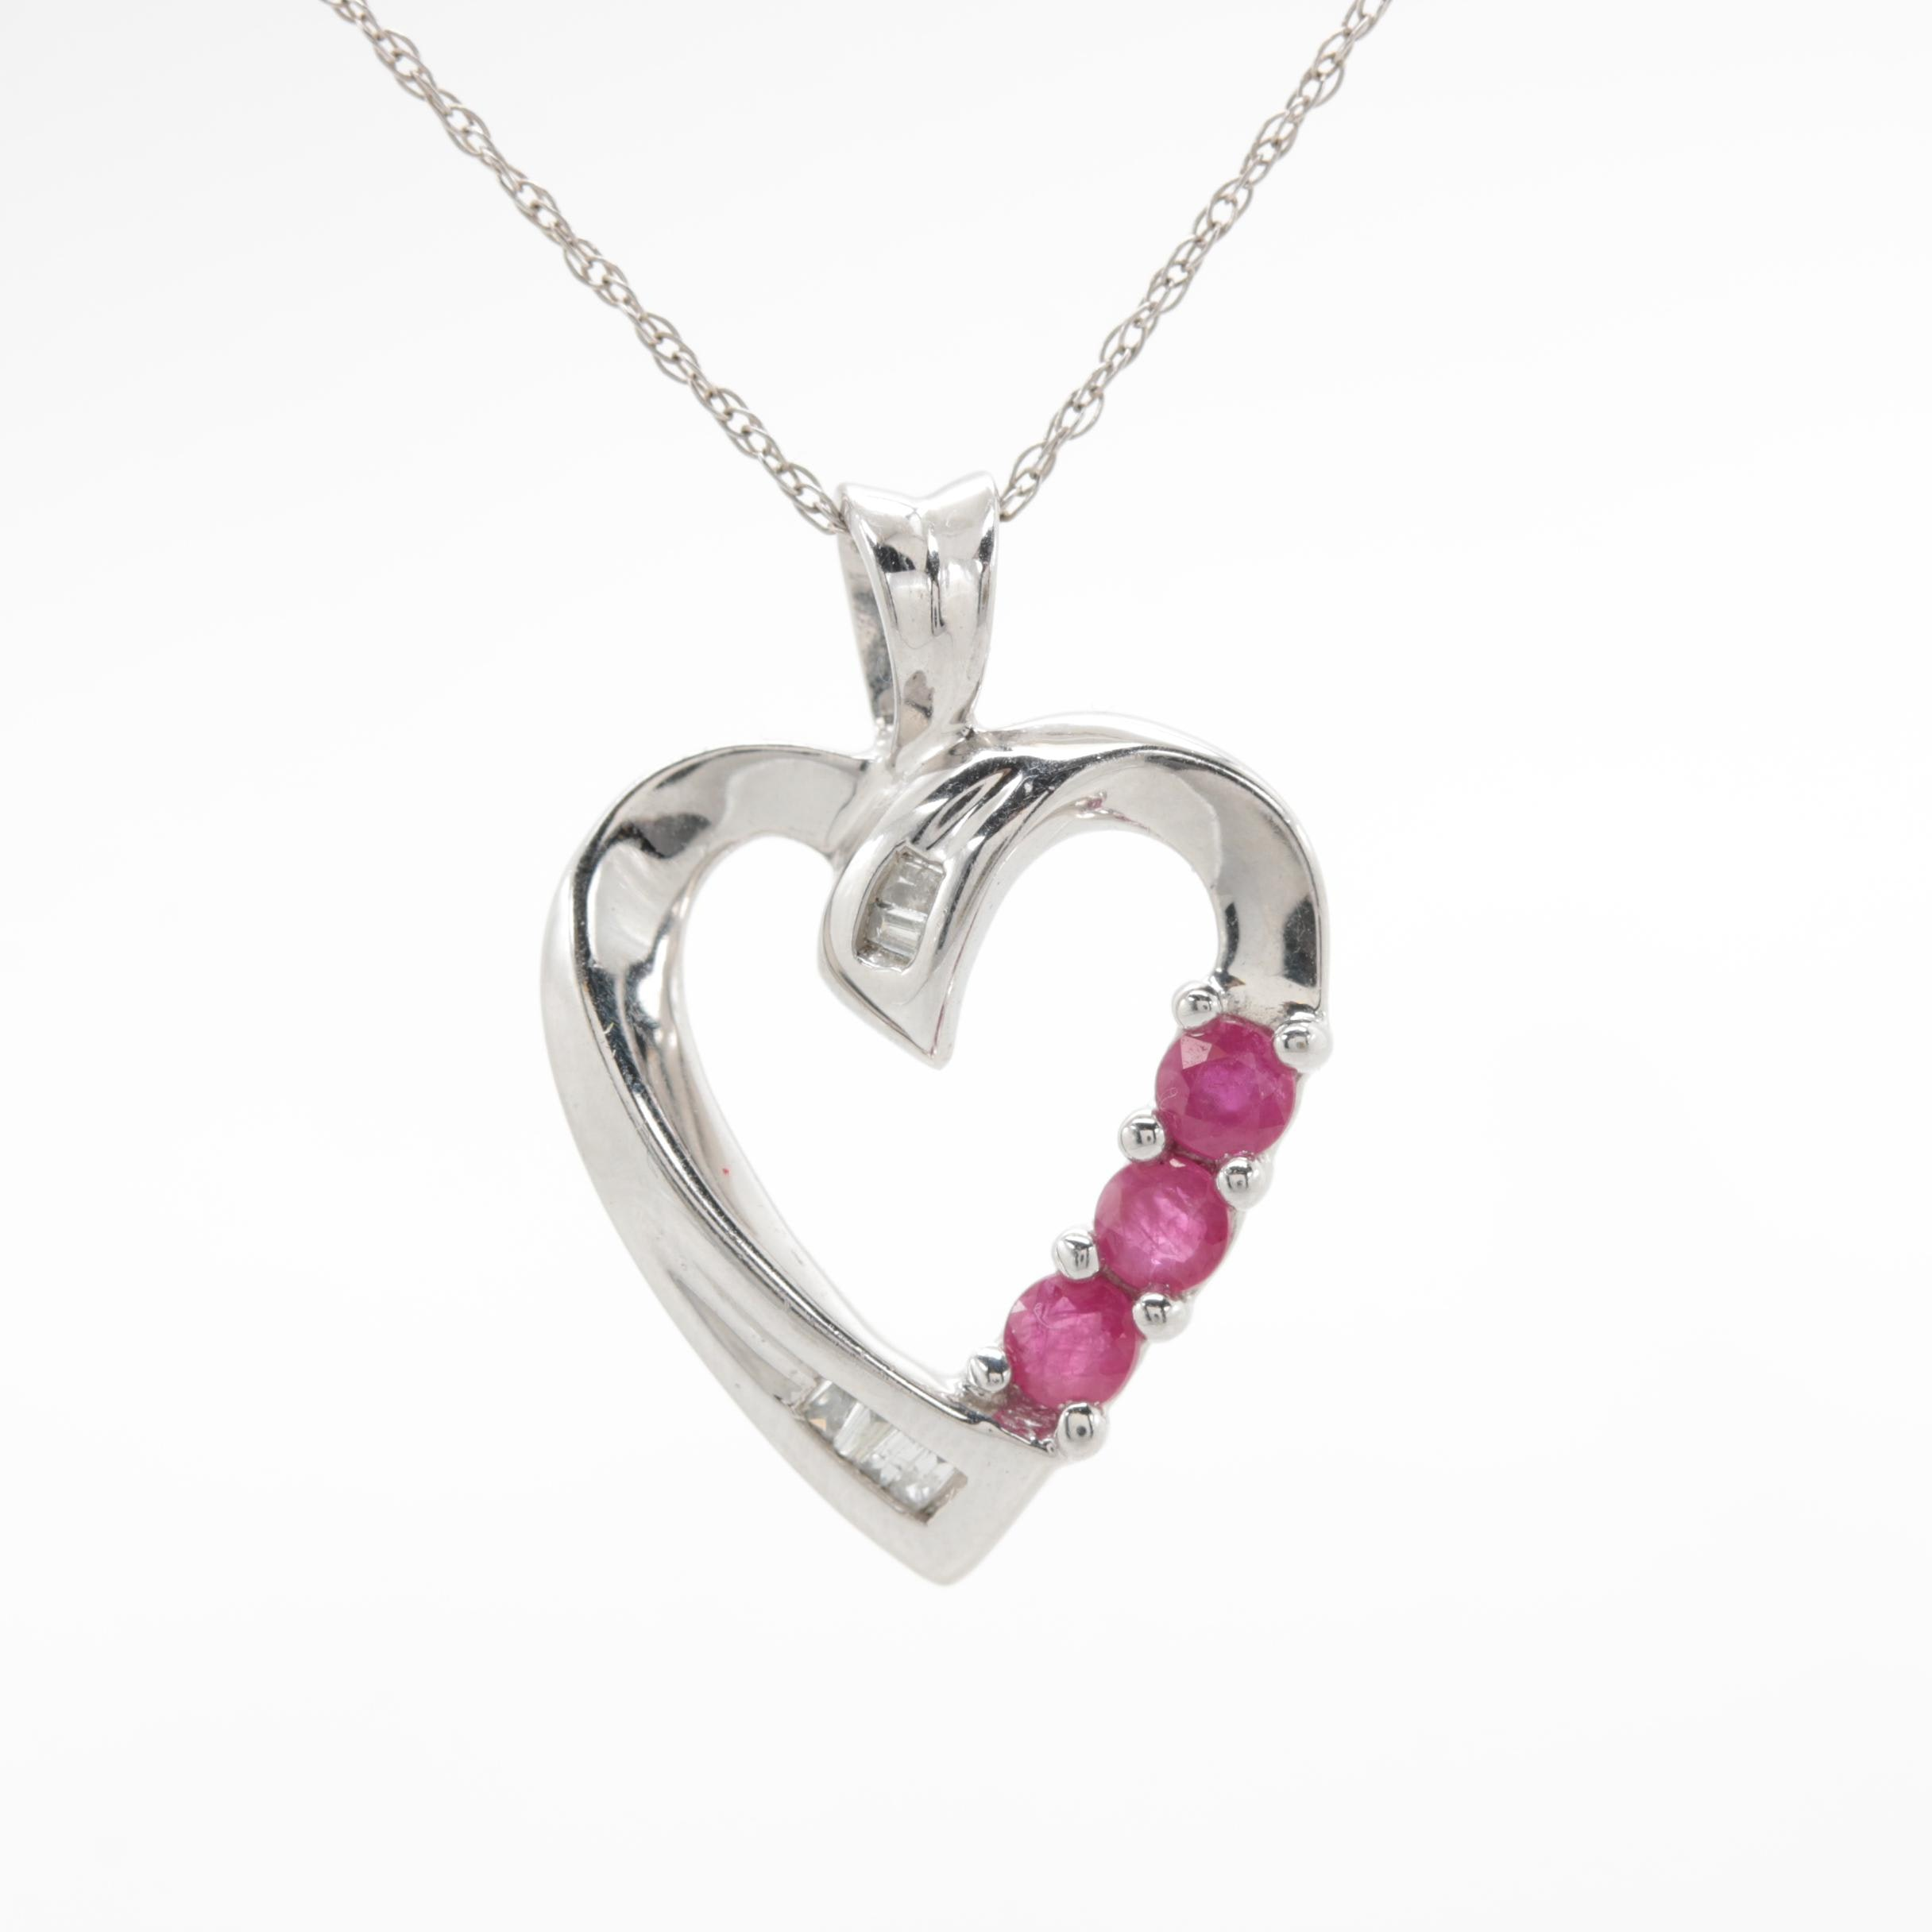 10K White Gold Diamond and Ruby Necklace